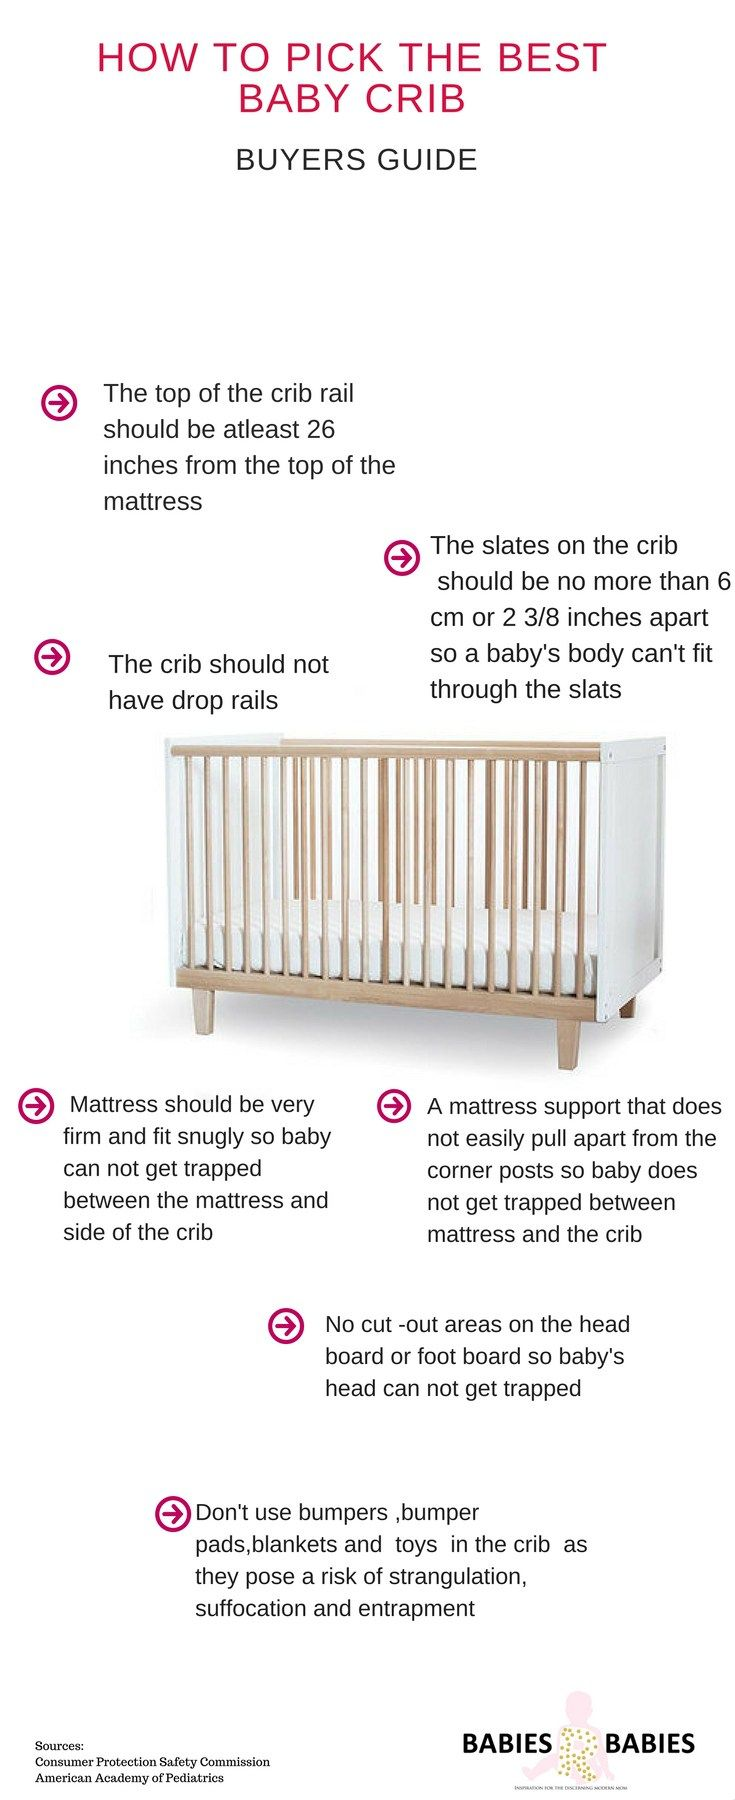 Crib for sale kijiji toronto - Baby Cribs What To Look For The 25 Best Ideas About Best Baby Cribs On